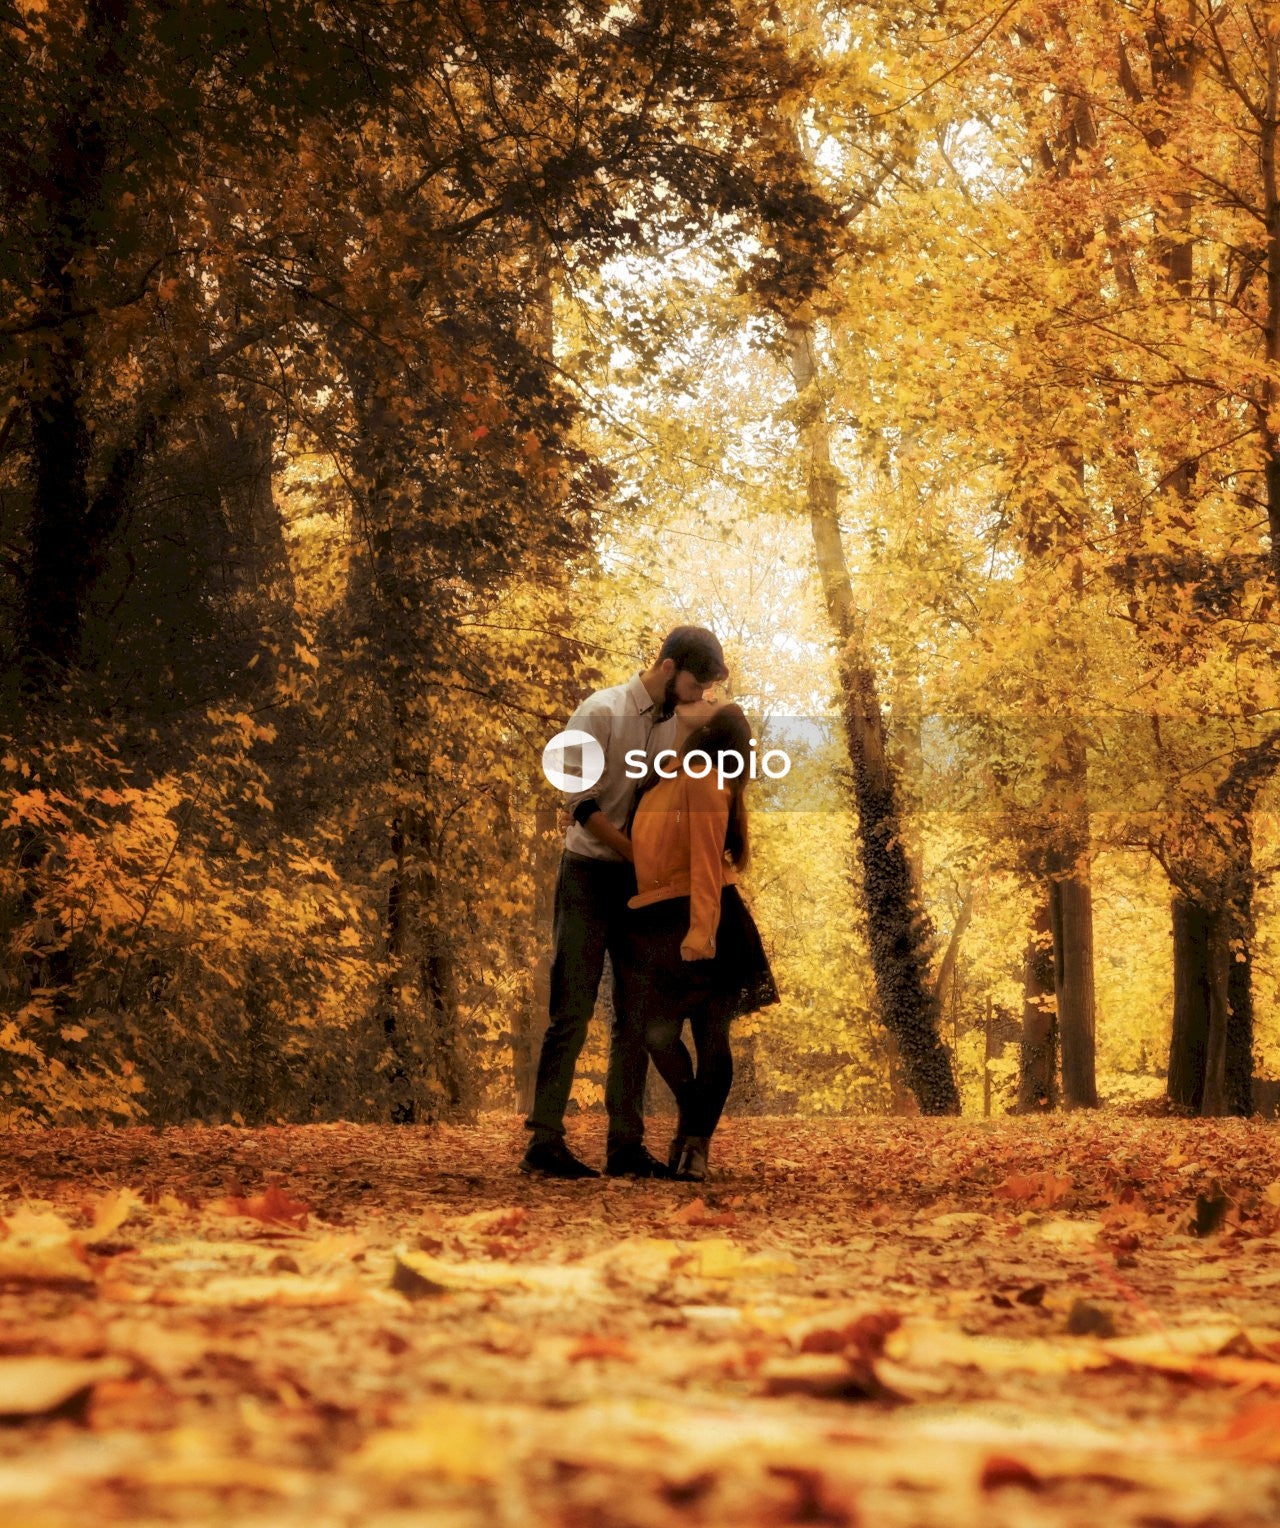 Man and woman kiss in forest